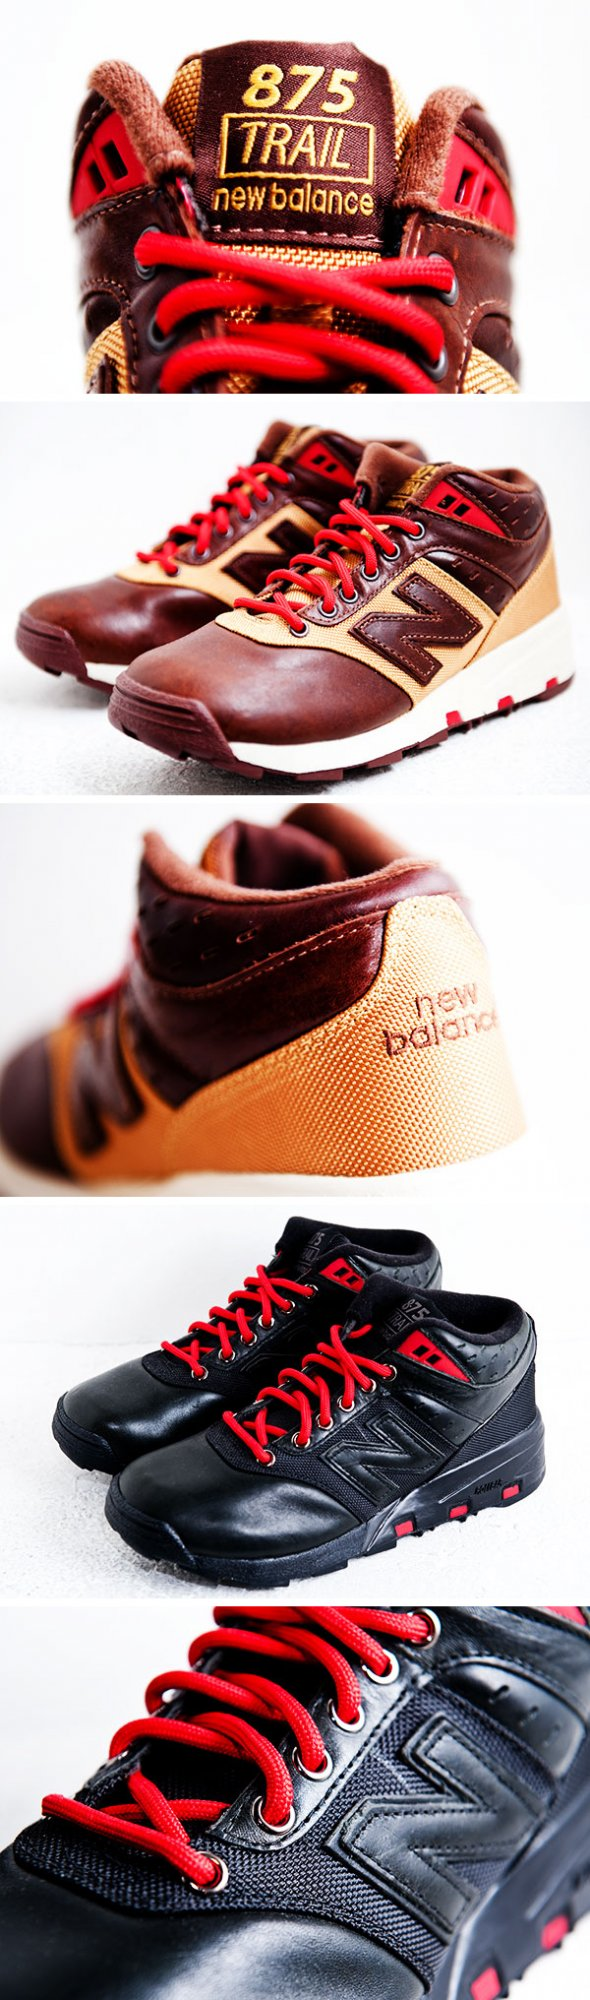 New Balance 875 Trail Boot